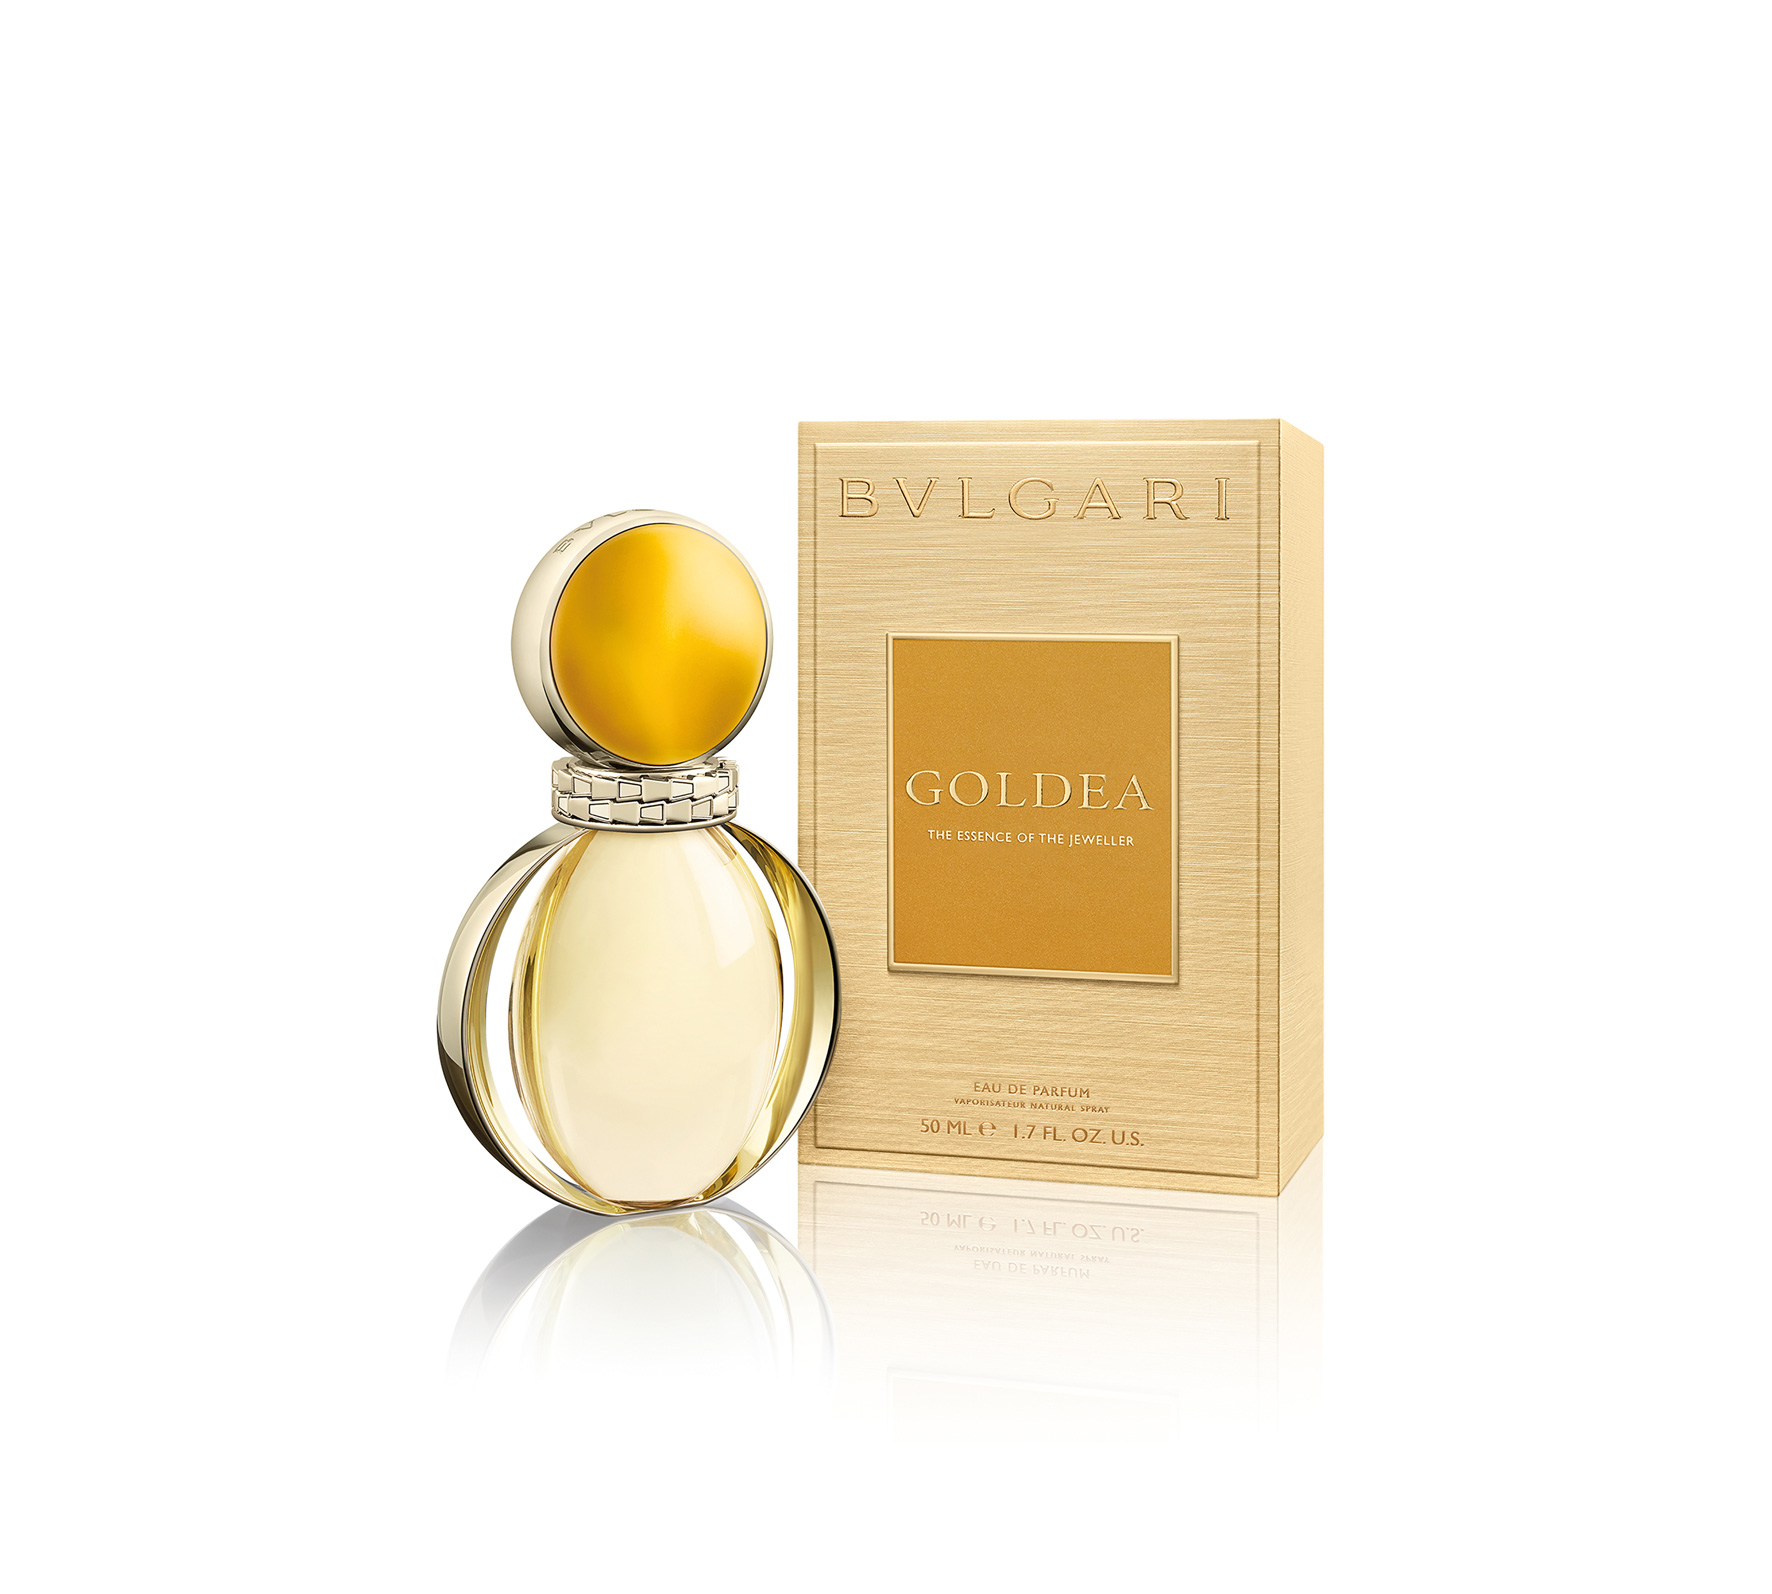 Goldea Beauty Oil, de Bvlgari